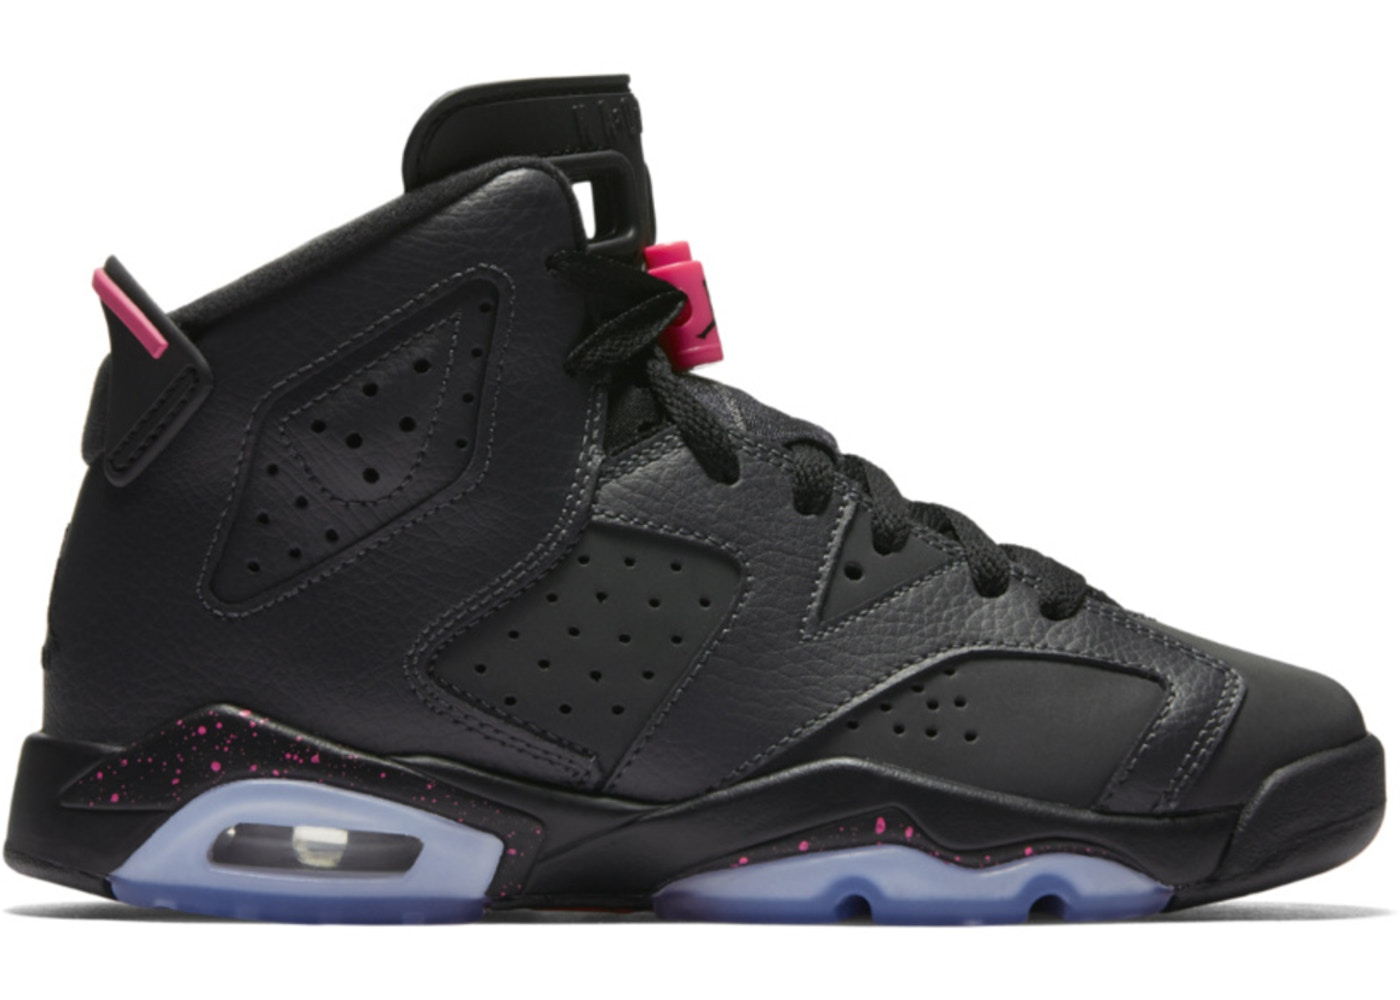 pretty nice 7ae3a 095d3 Sell. or Ask. Size  7.5Y. View All Bids. Jordan 6 Retro Hyper Pink (GS)